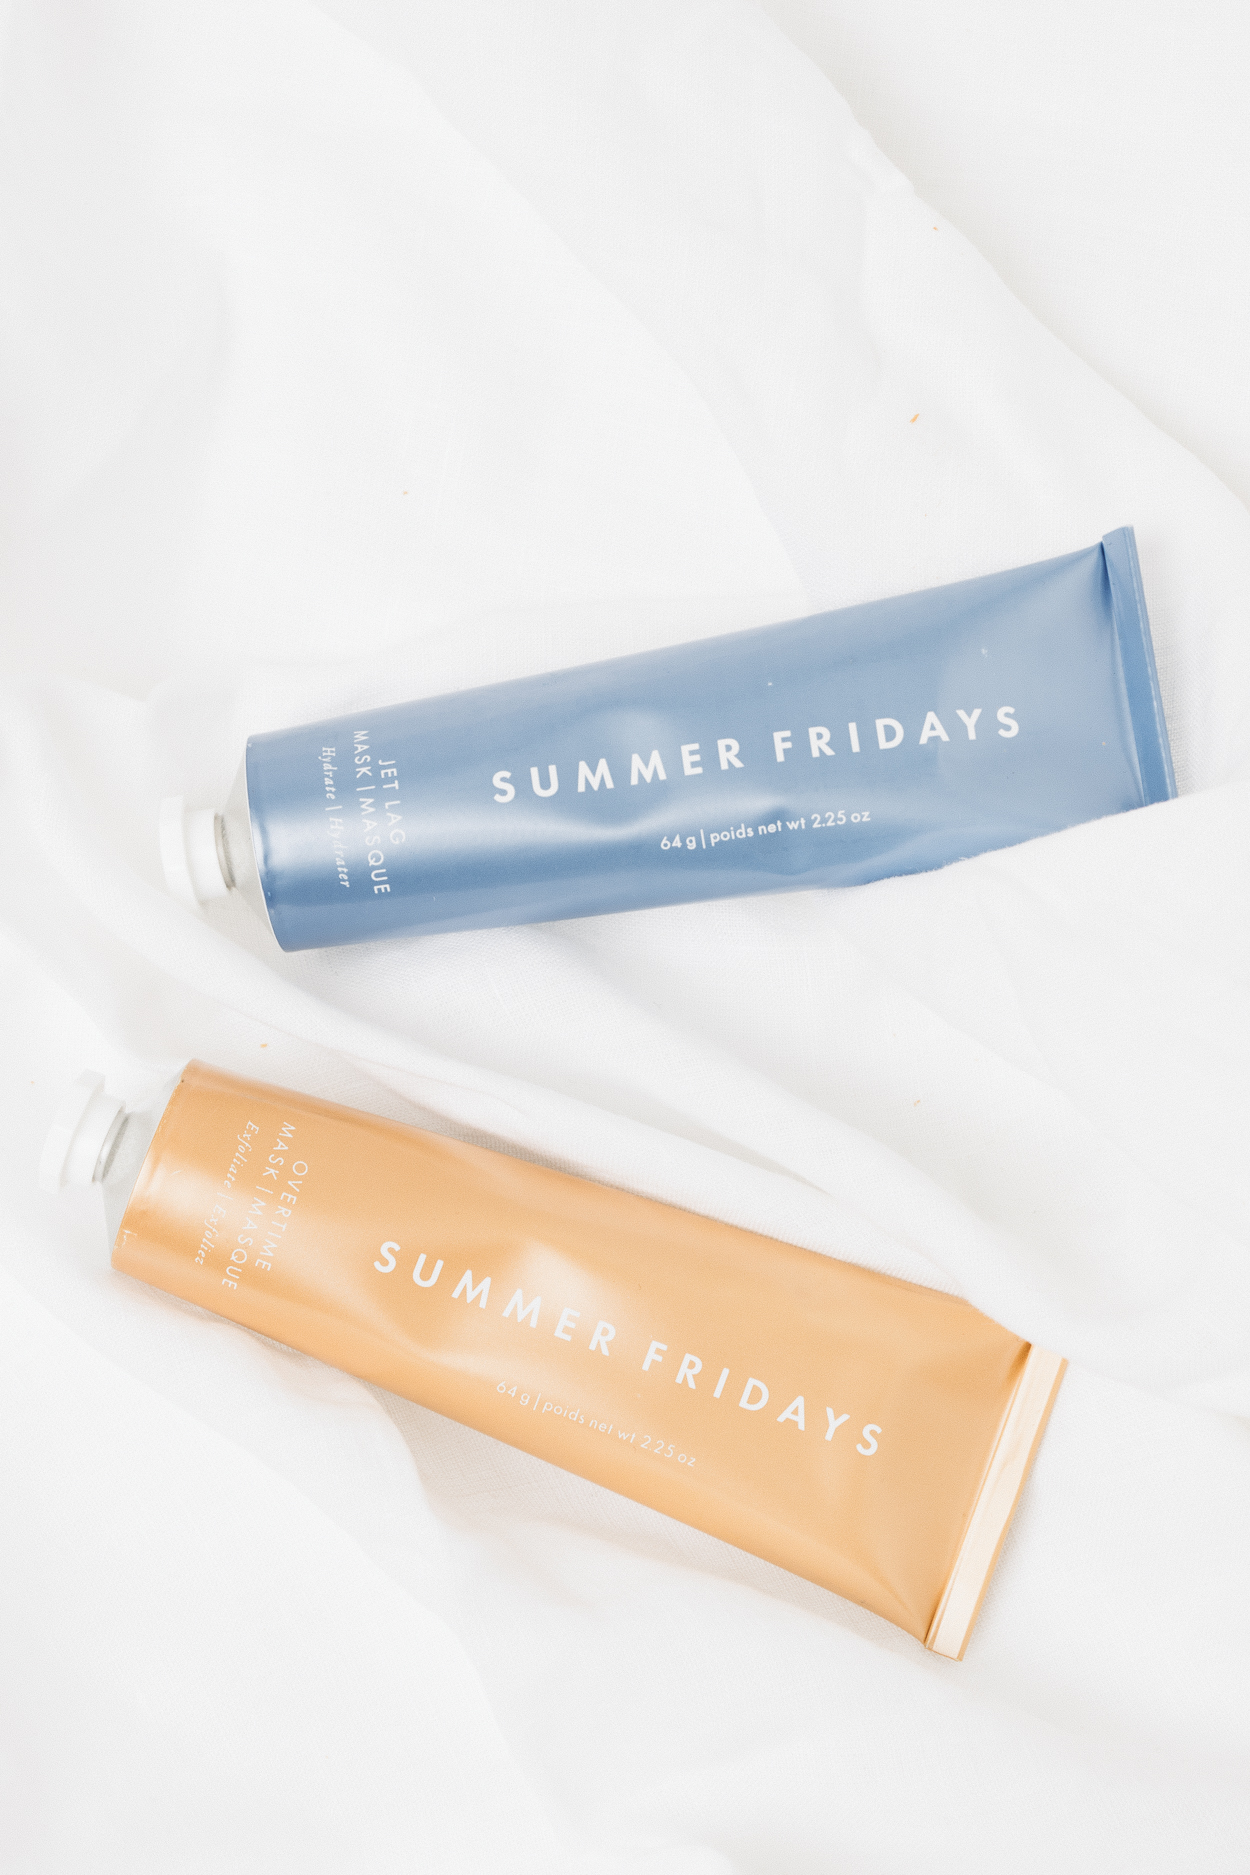 Summer Fridays Jet Lag Overtime Mask Review | StolenInspiration.com NZ Fashion Blog